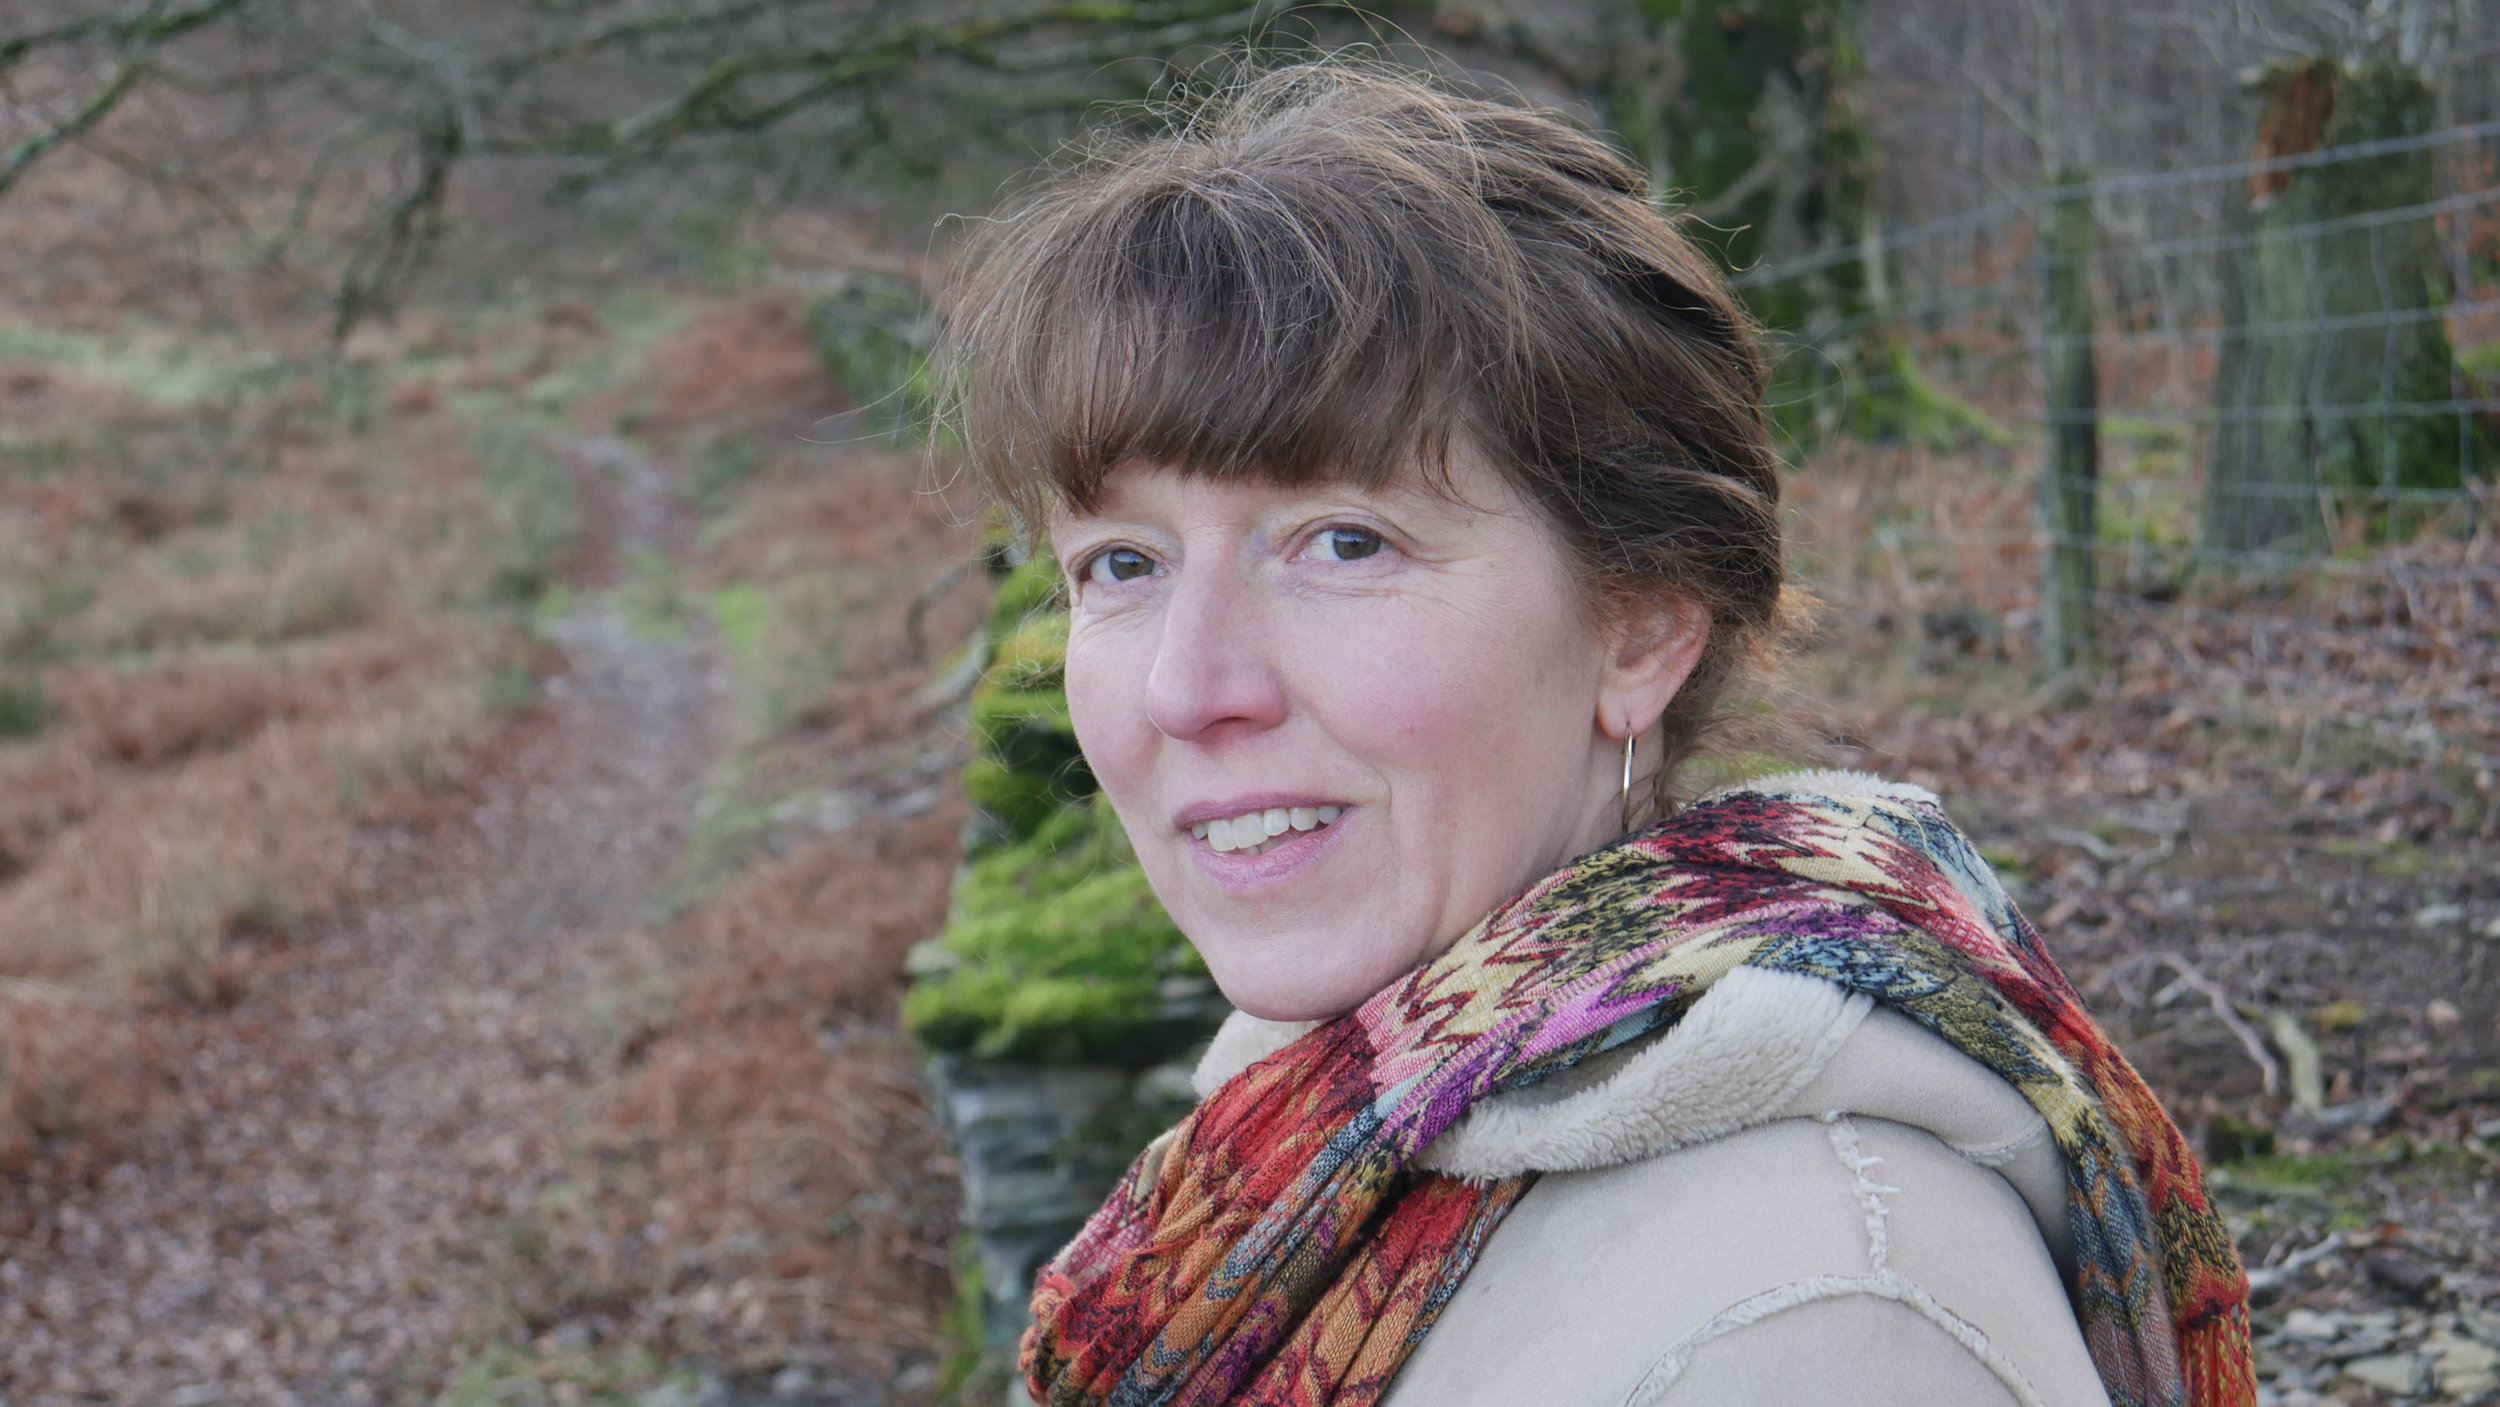 Helen Pendry's debut novel,  The Levels,  will be out in May 2019, published by Parthian.